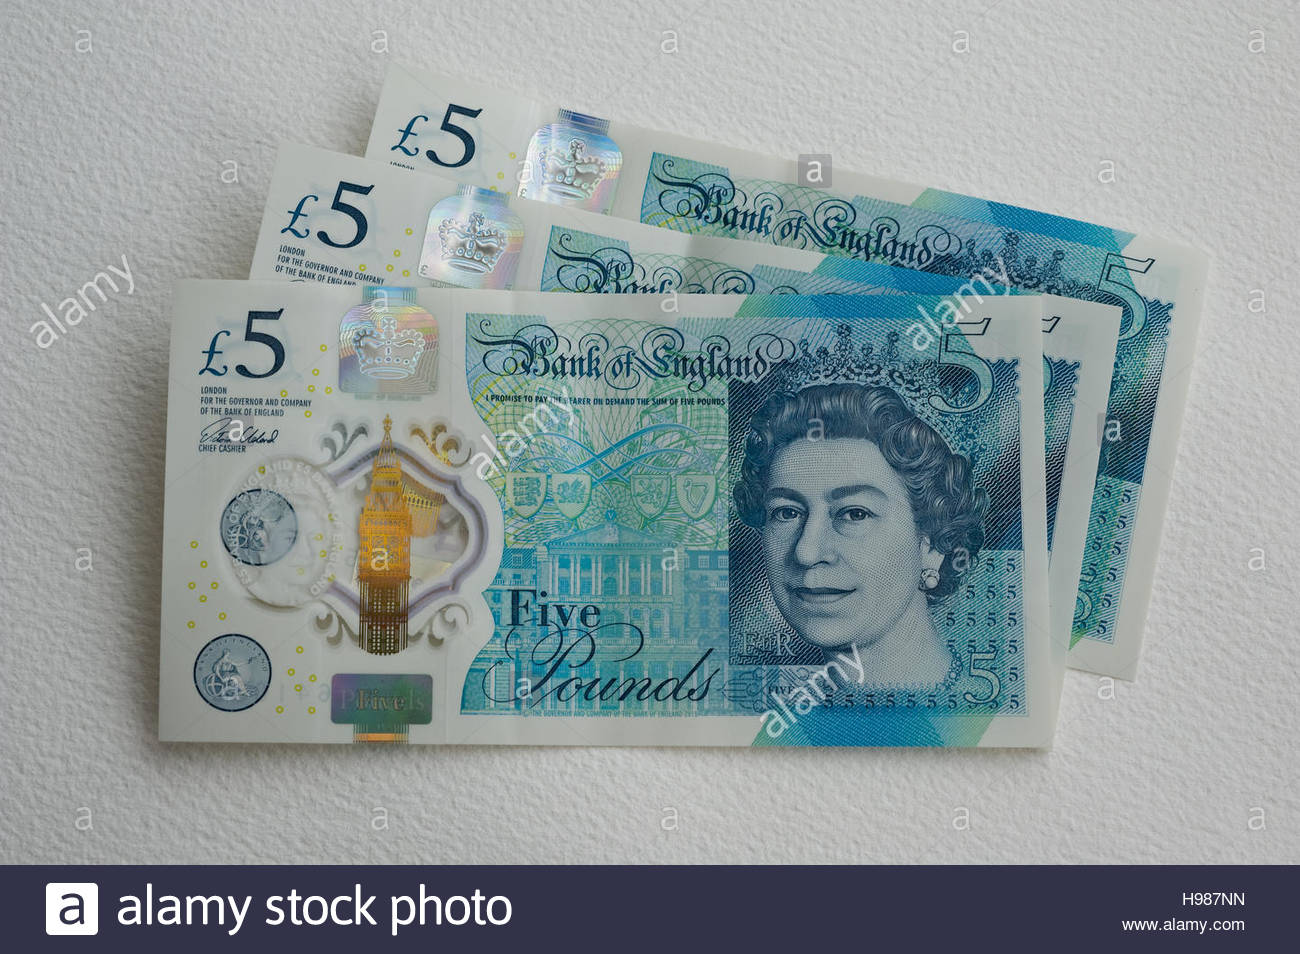 Three New Five pound notes - Stock Image